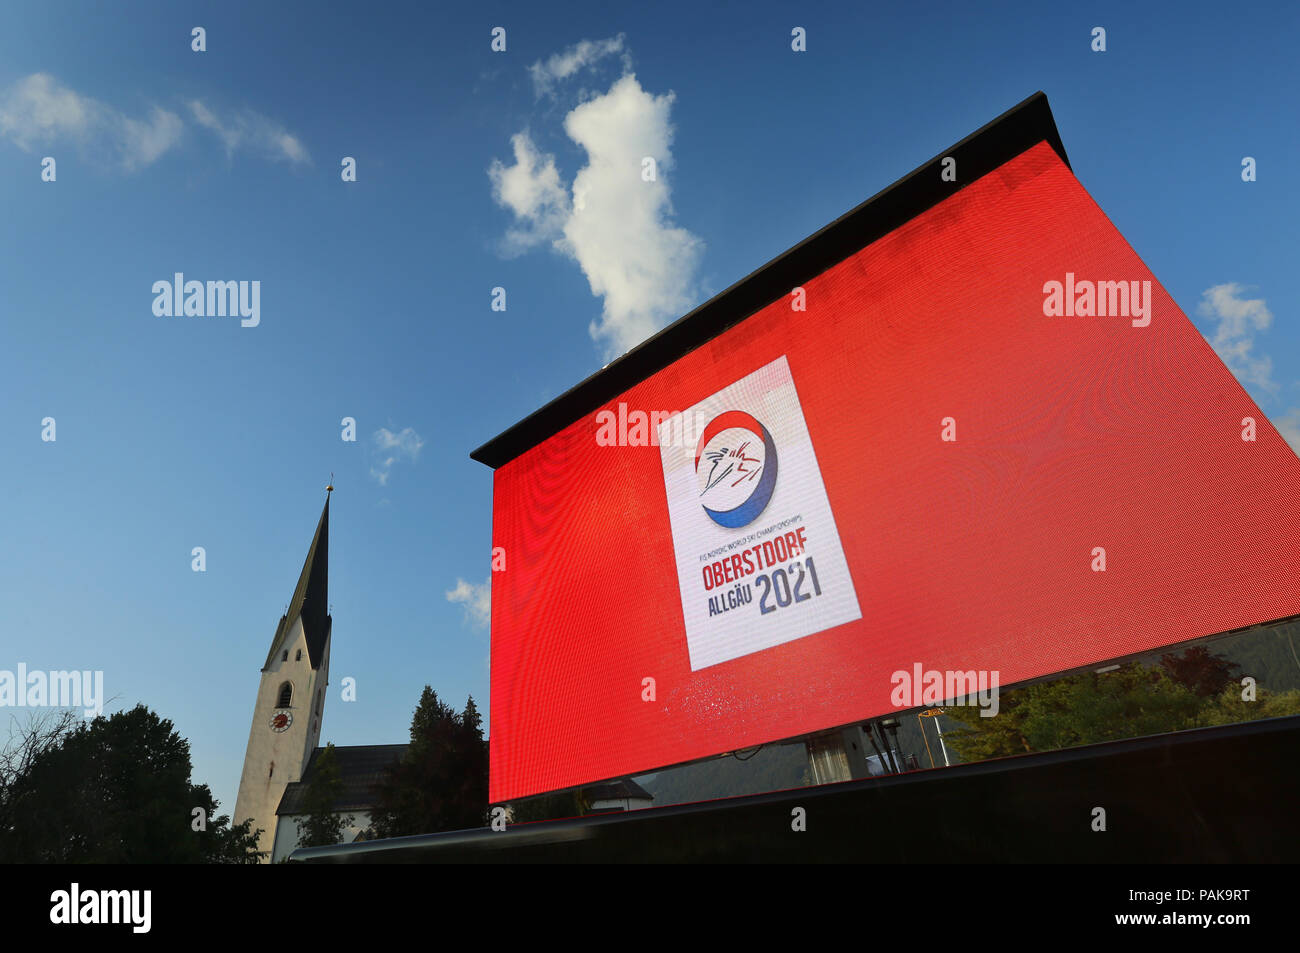 Oberstdorf, Germany. 23rd July, 2018. 23.07.2018, Bayern, Oberstdorf: The logo for the FIS Nordic World Ski Championships 2021 can be seen on a video wall. Credit: Karl-Josef Hildenbrand/dpa/Alamy Live News - Stock Image